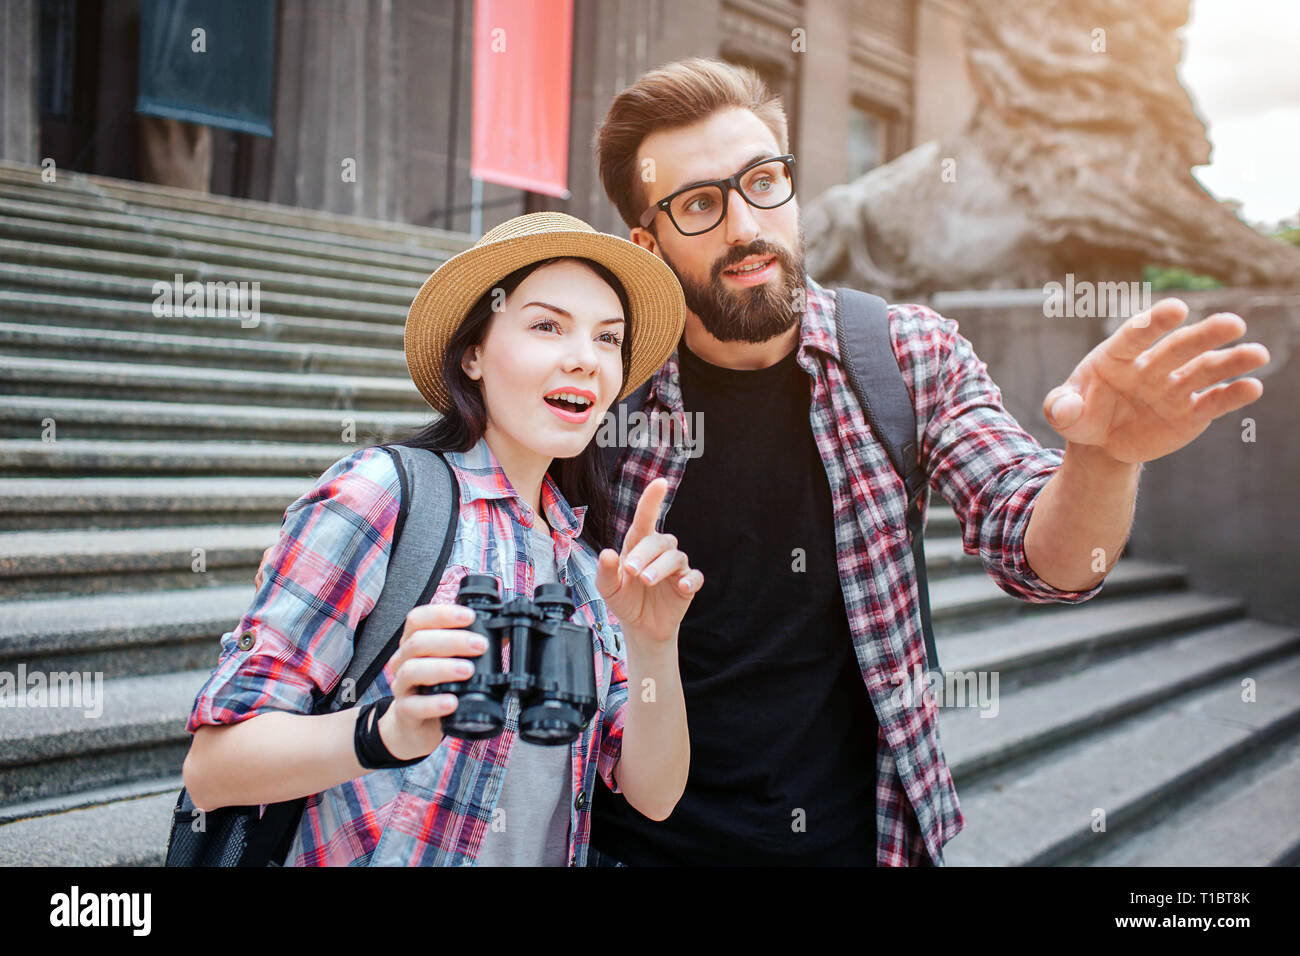 Amazed tourists stand in front of stairs. They point forward. Woman holds binoculars. They are in city. Bearded guy wears glasses. - Stock Image